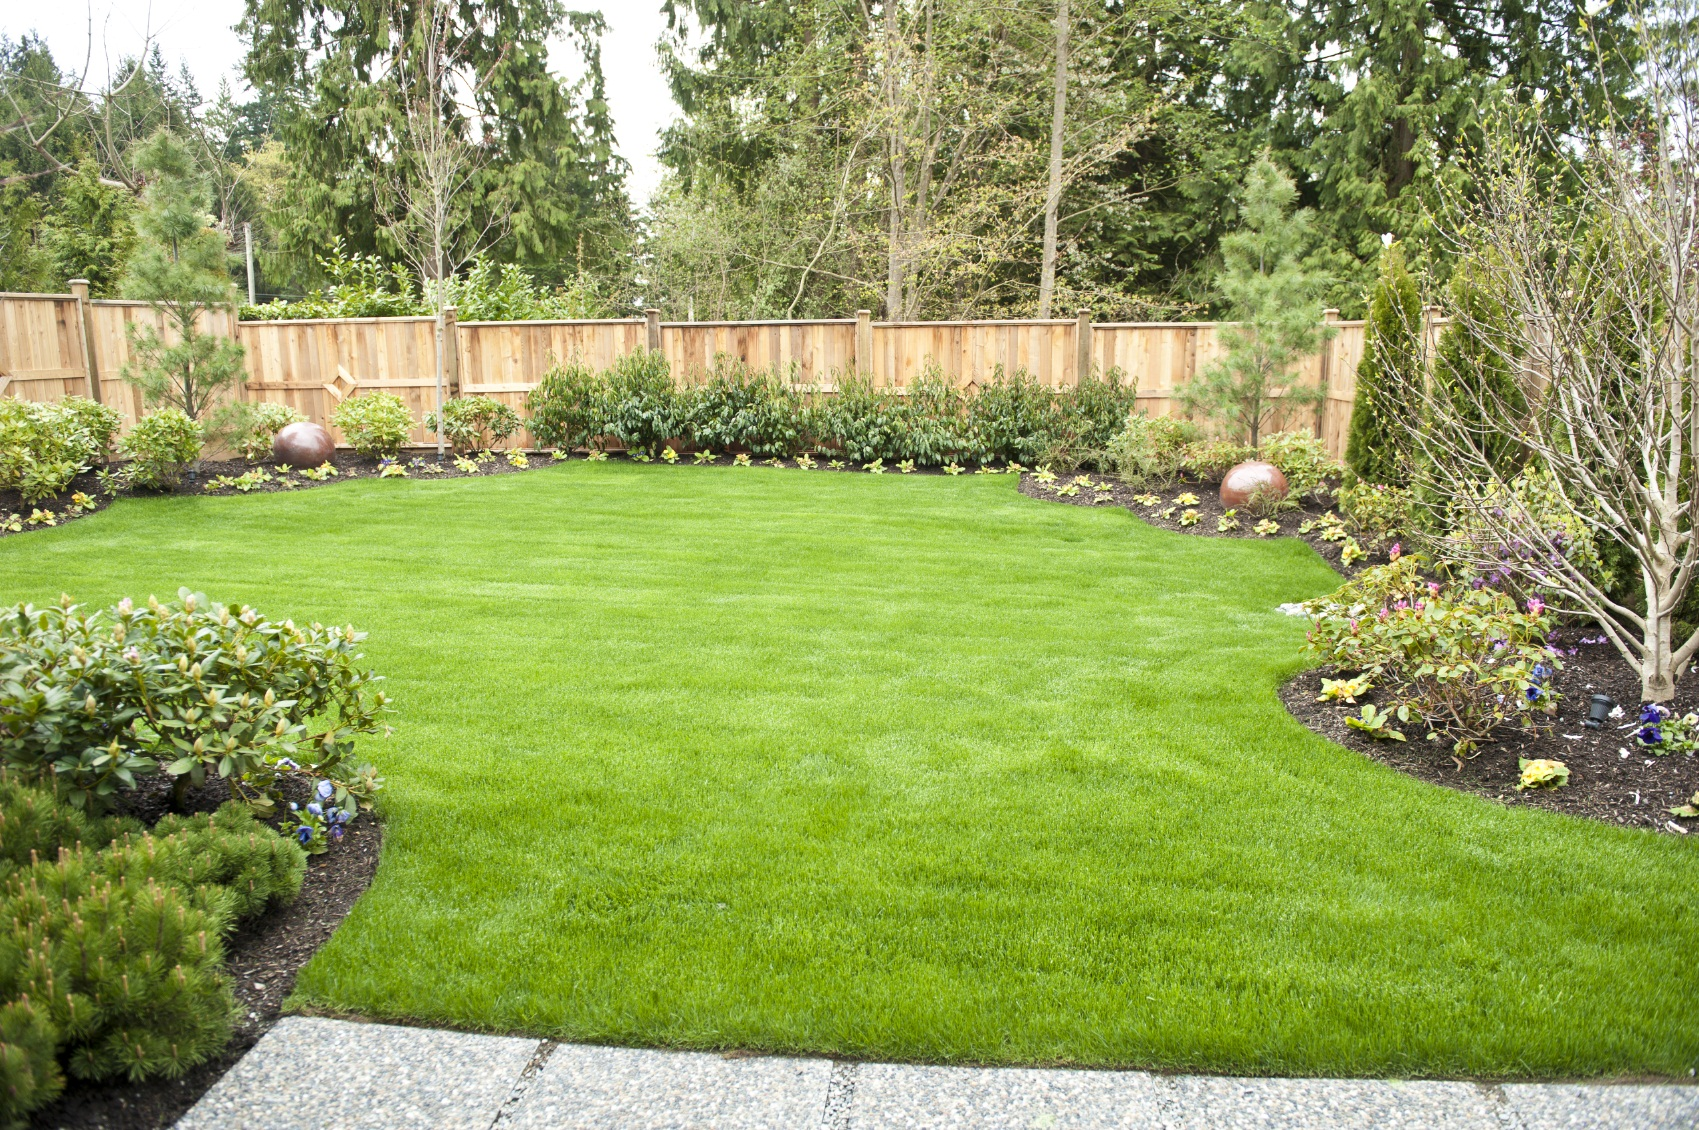 Backyard landscaping tips metamorphosis landscape design for How to landscape backyard